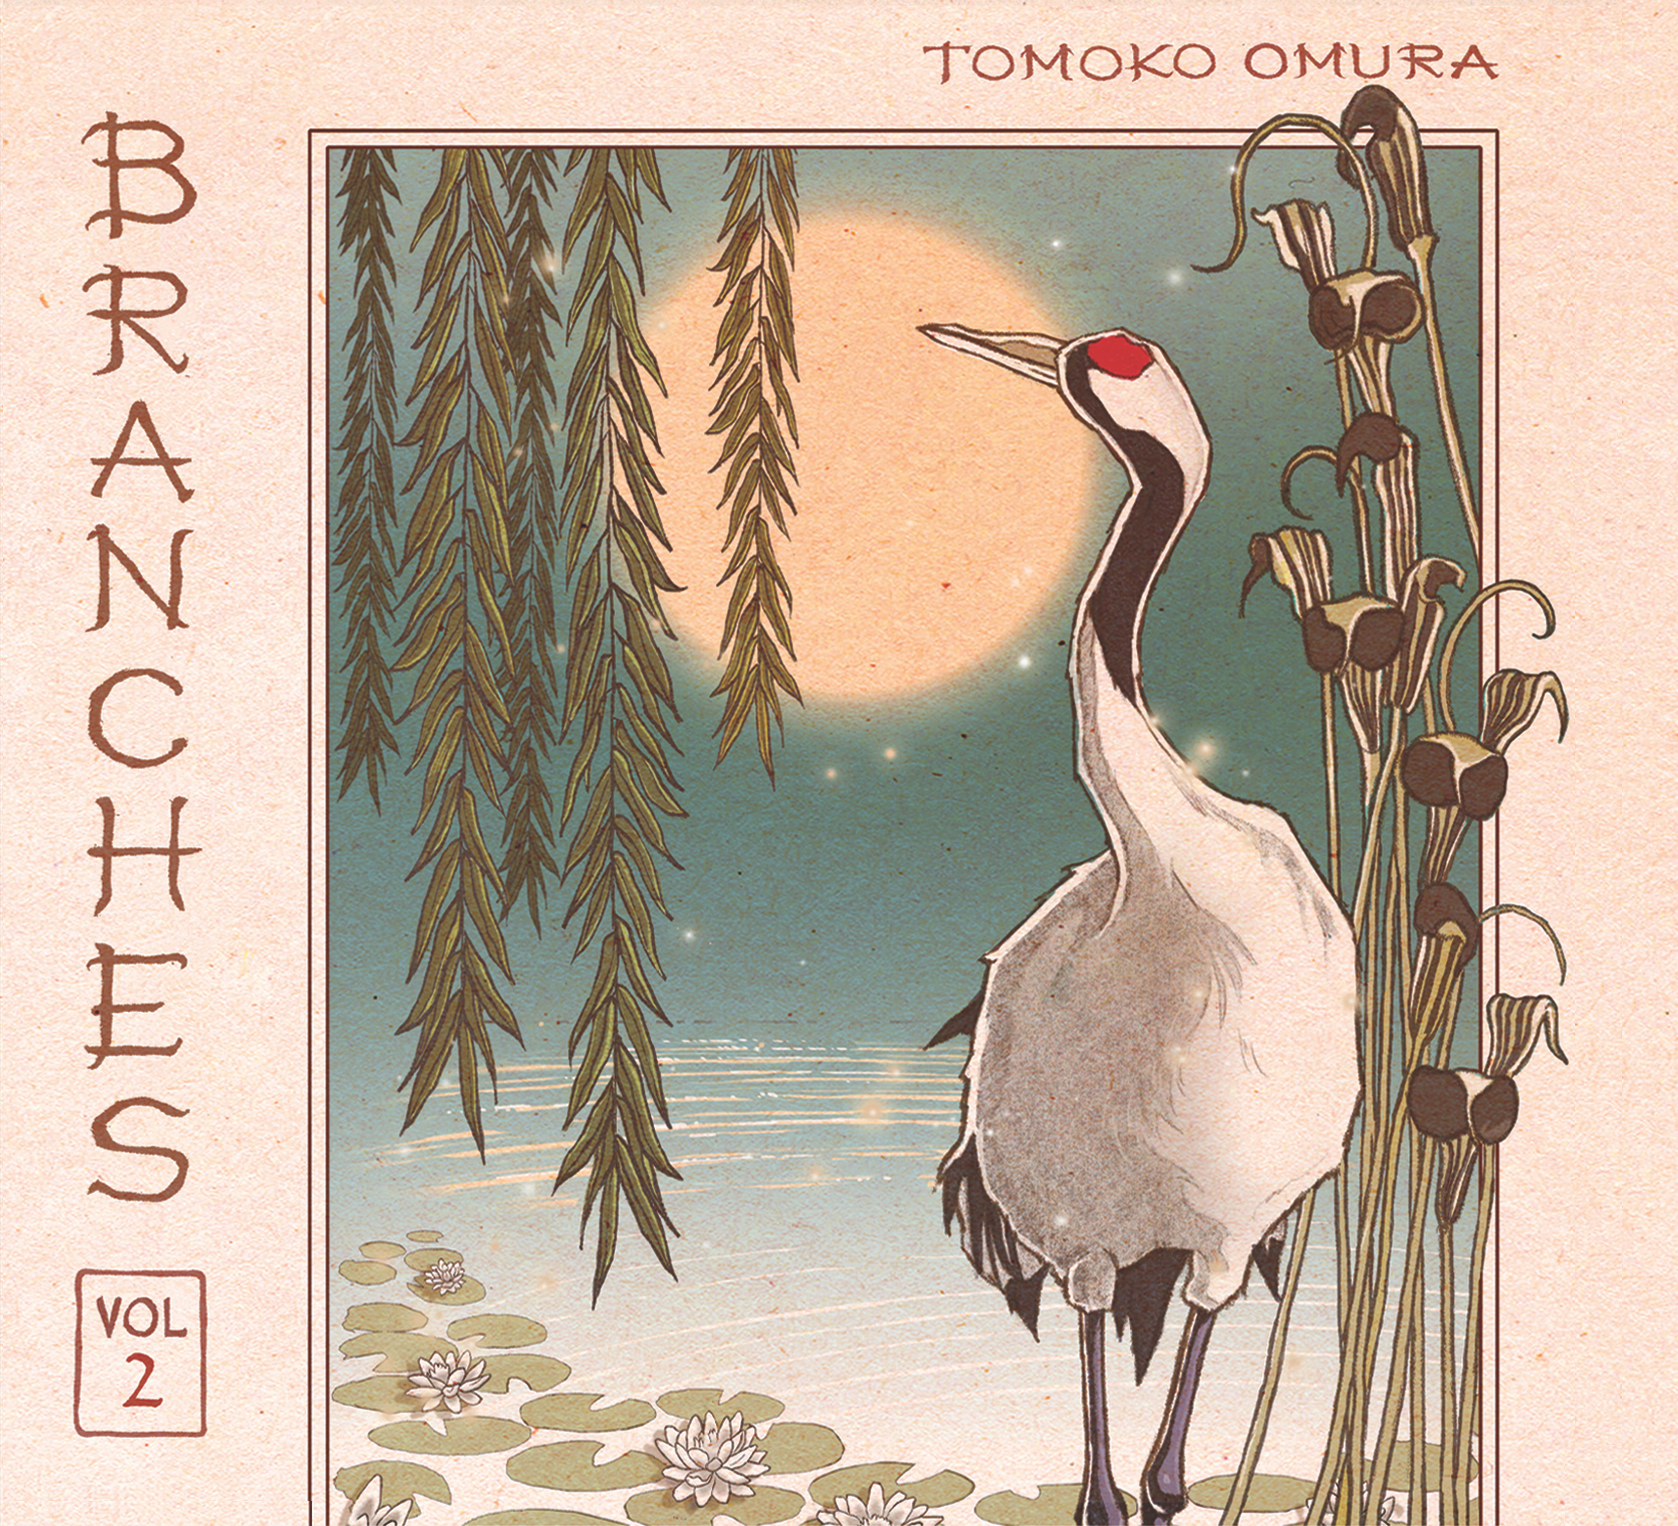 NEW RELEASE: Tomoko Omura's 'BRANCHES VOL. 2' out June 18th, 2021 via Outside in Music